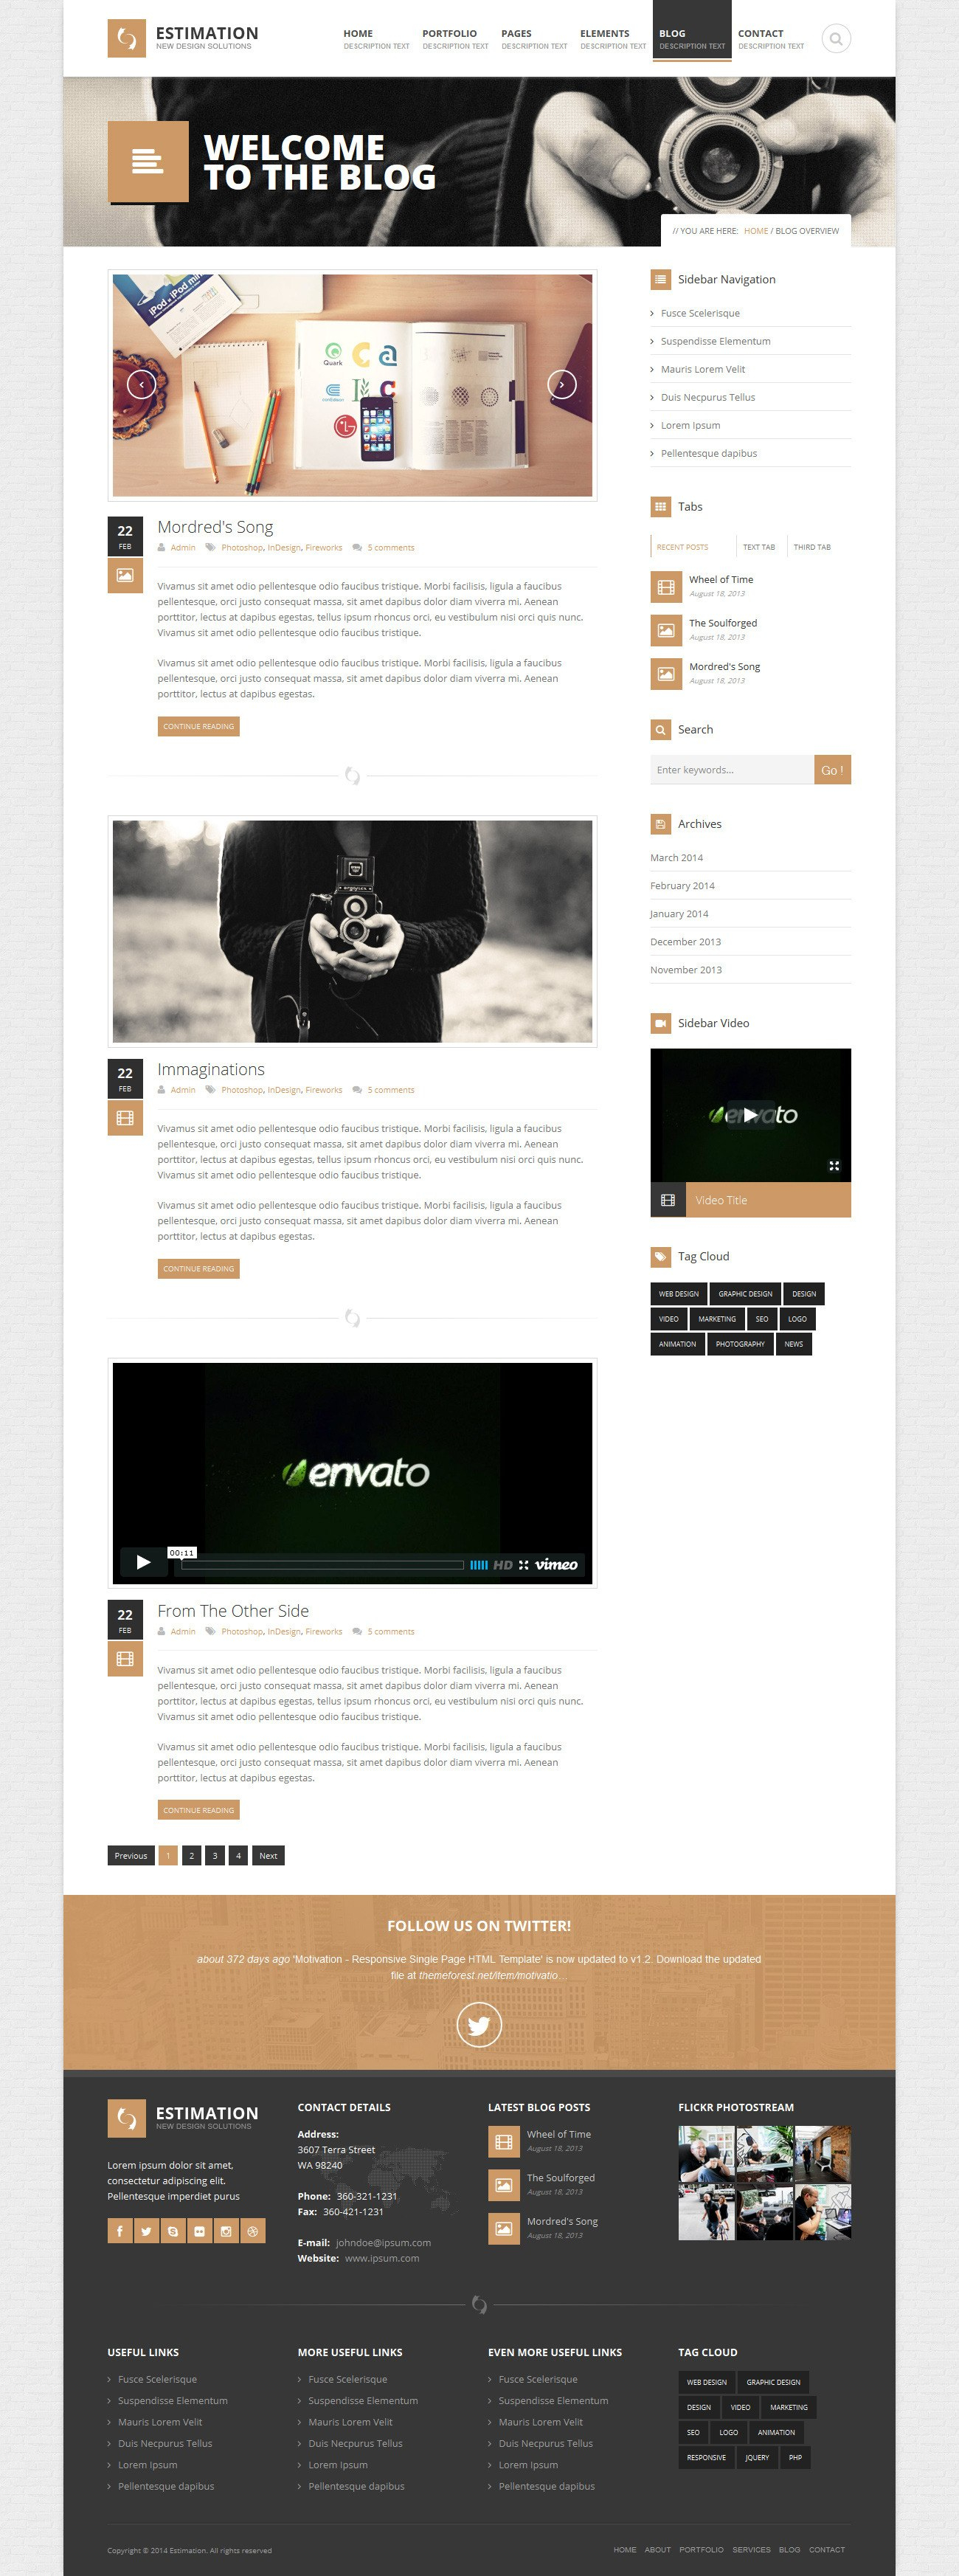 Estimation  Responsive Business Html Templatehedgehogcreative Inside Estimation Responsive Business Html Template Free Download